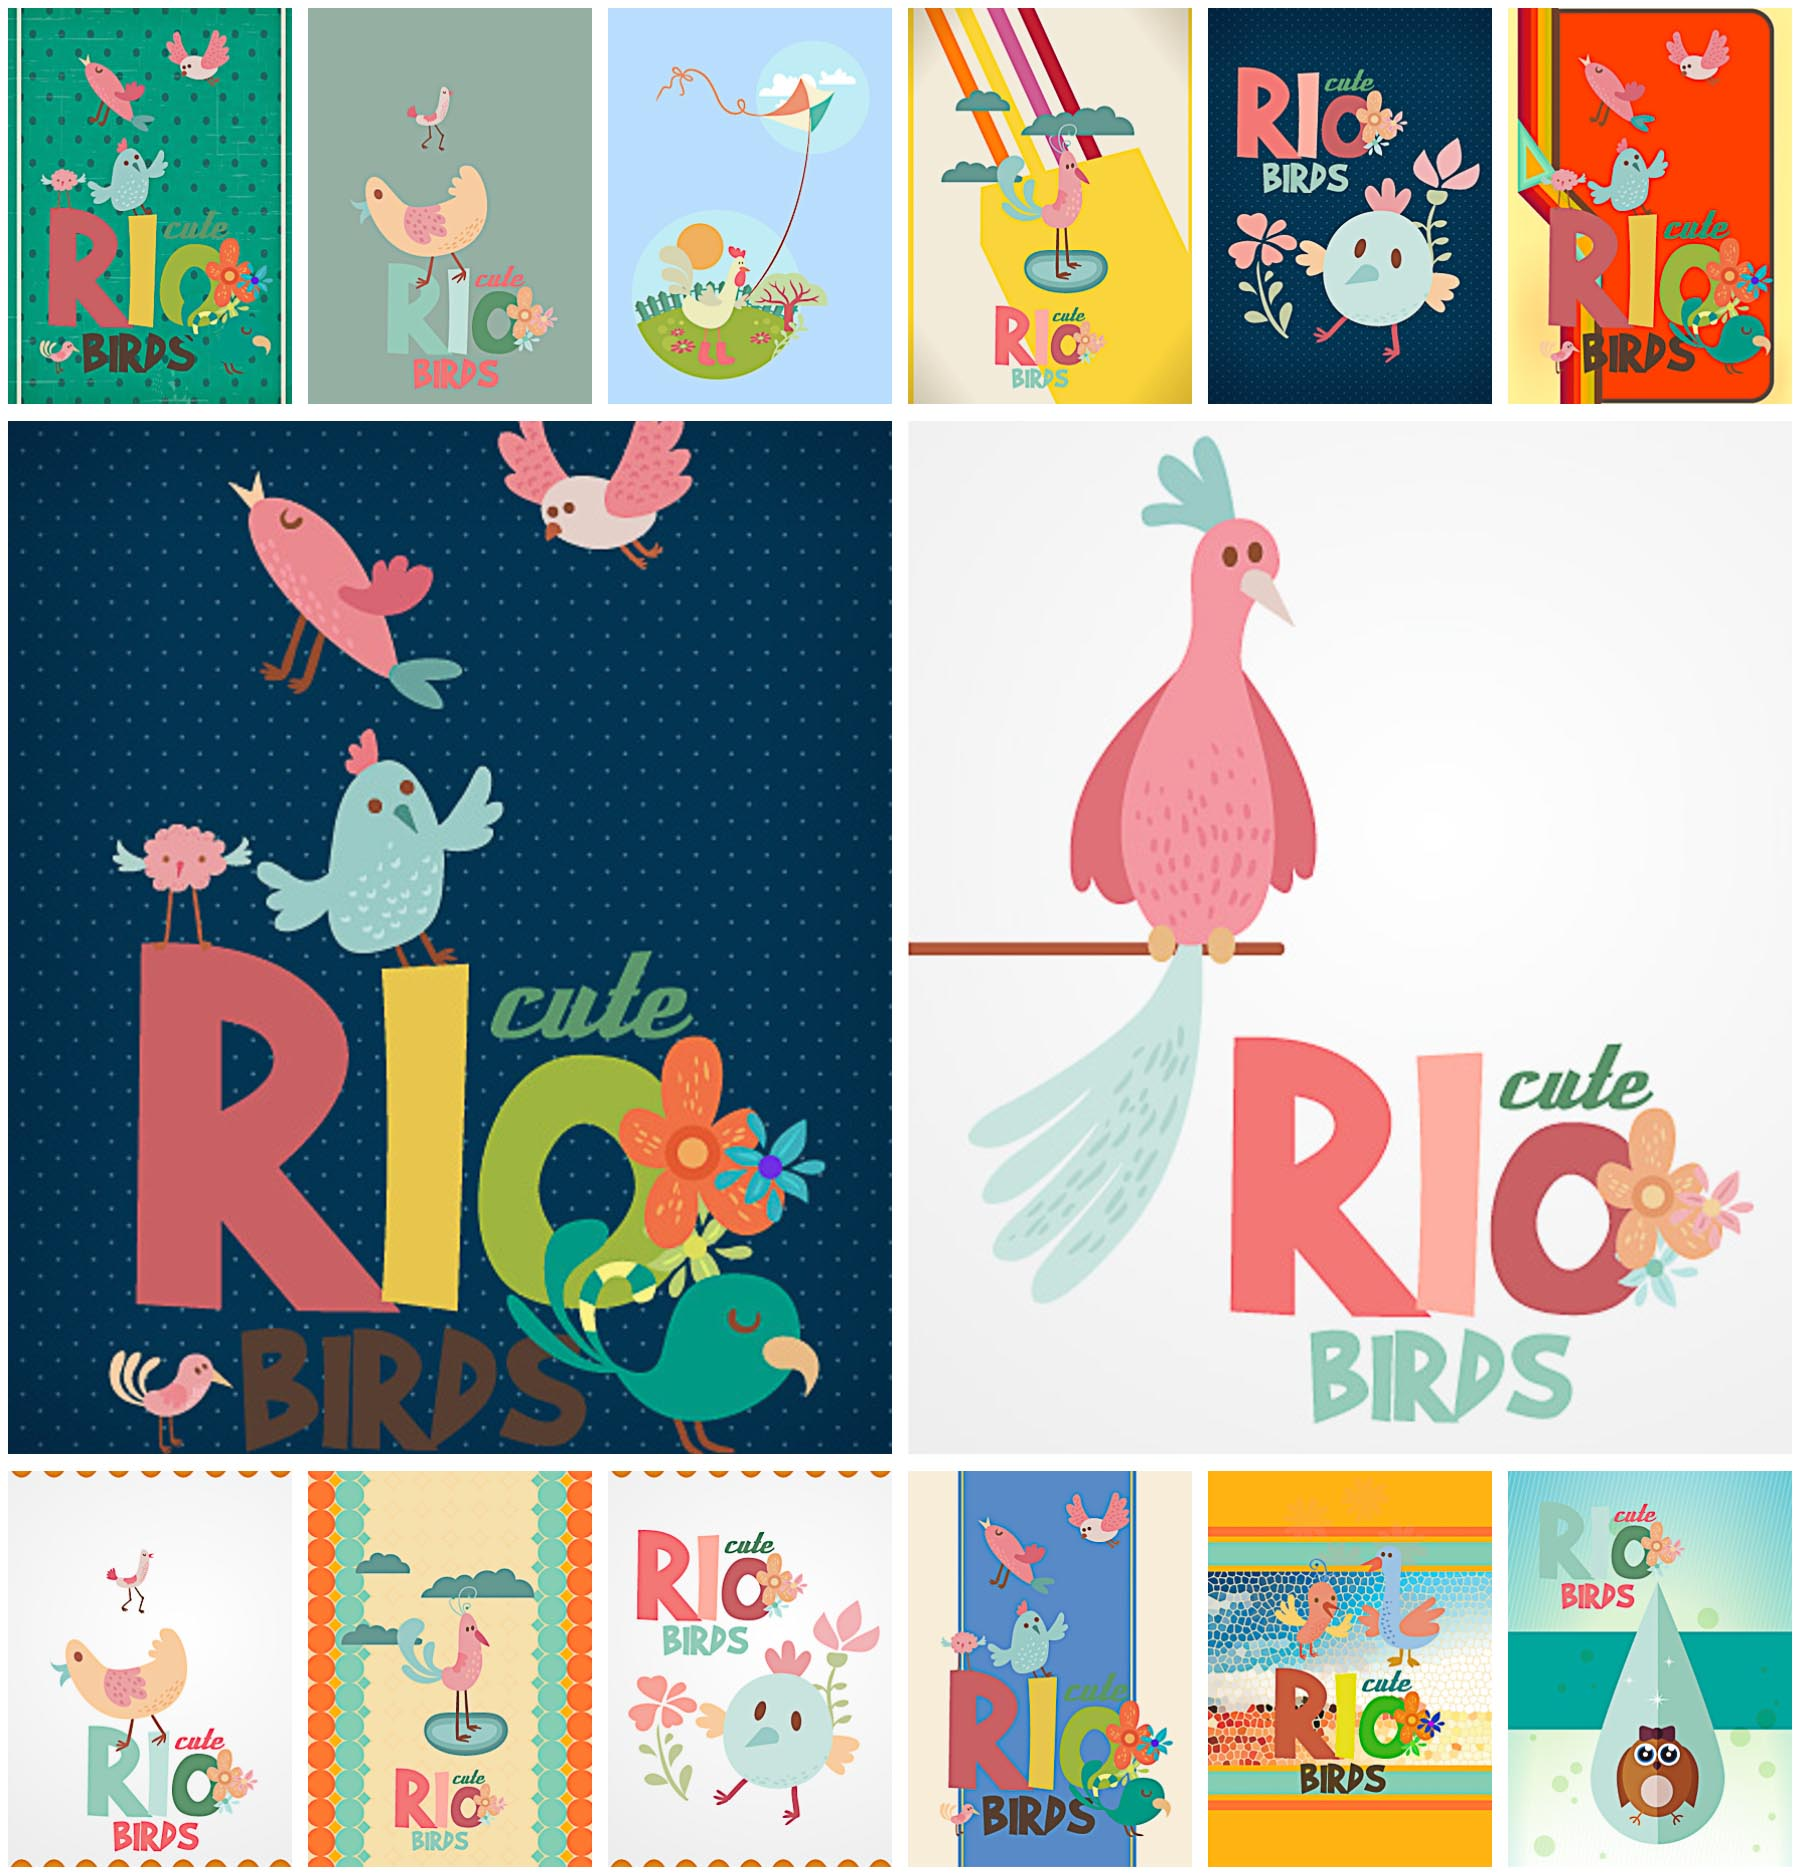 Rio birds cartoon cute set vector